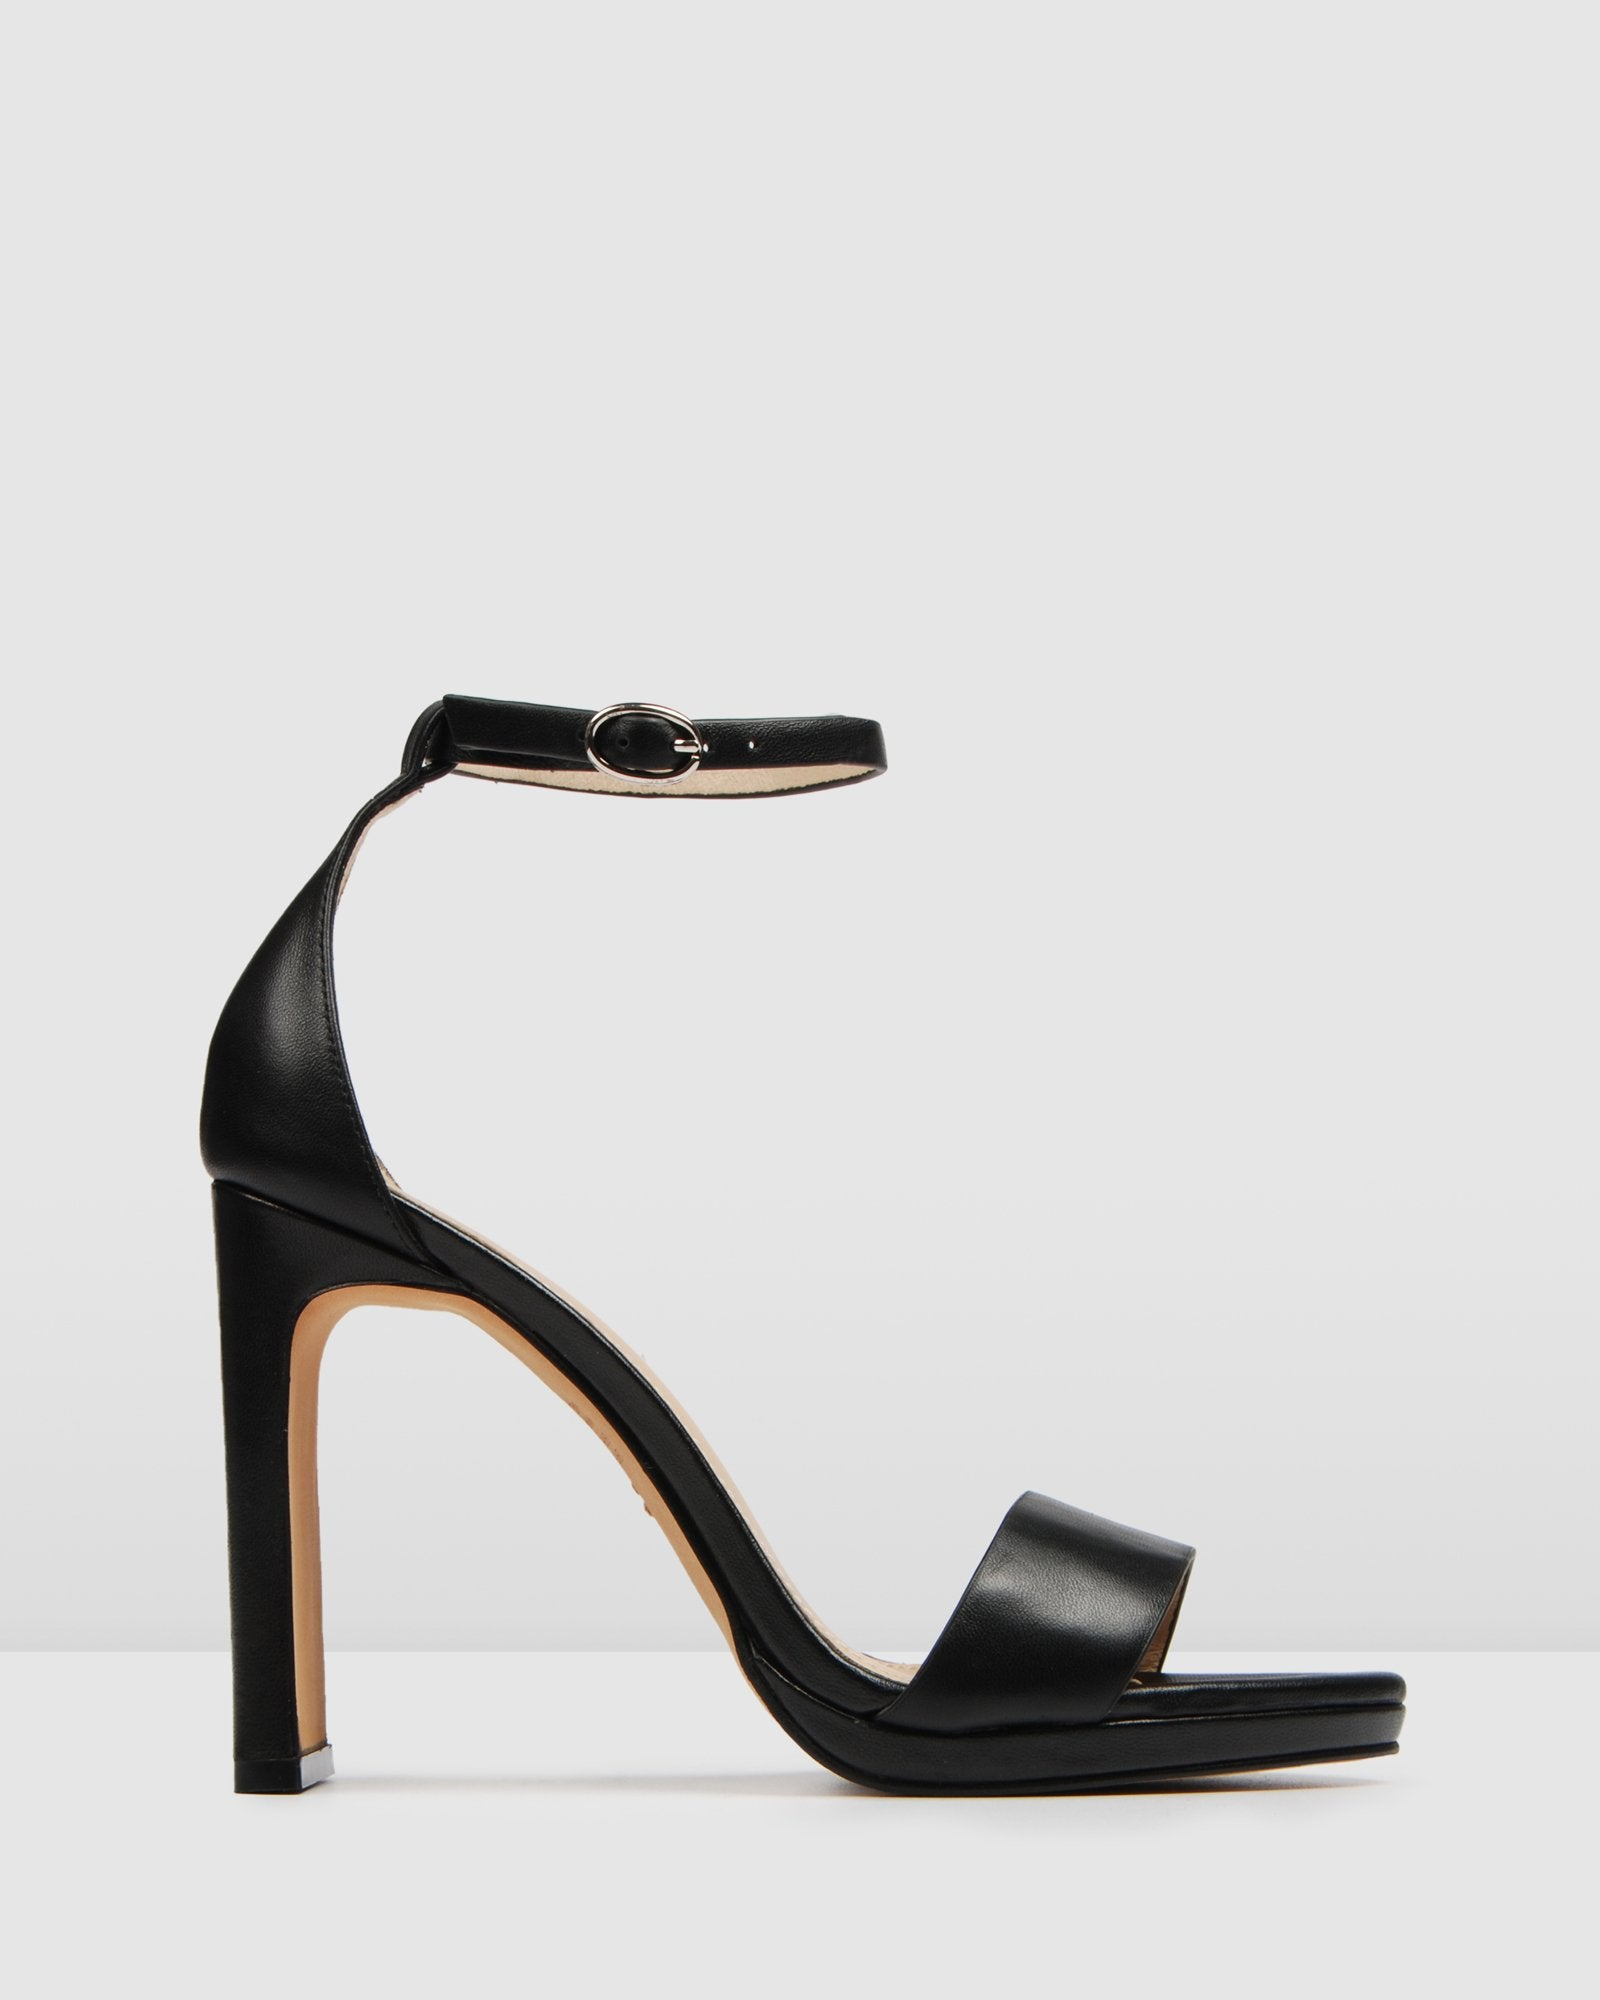 TAURUS HIGH HEEL SANDALS BLACK LEATHER